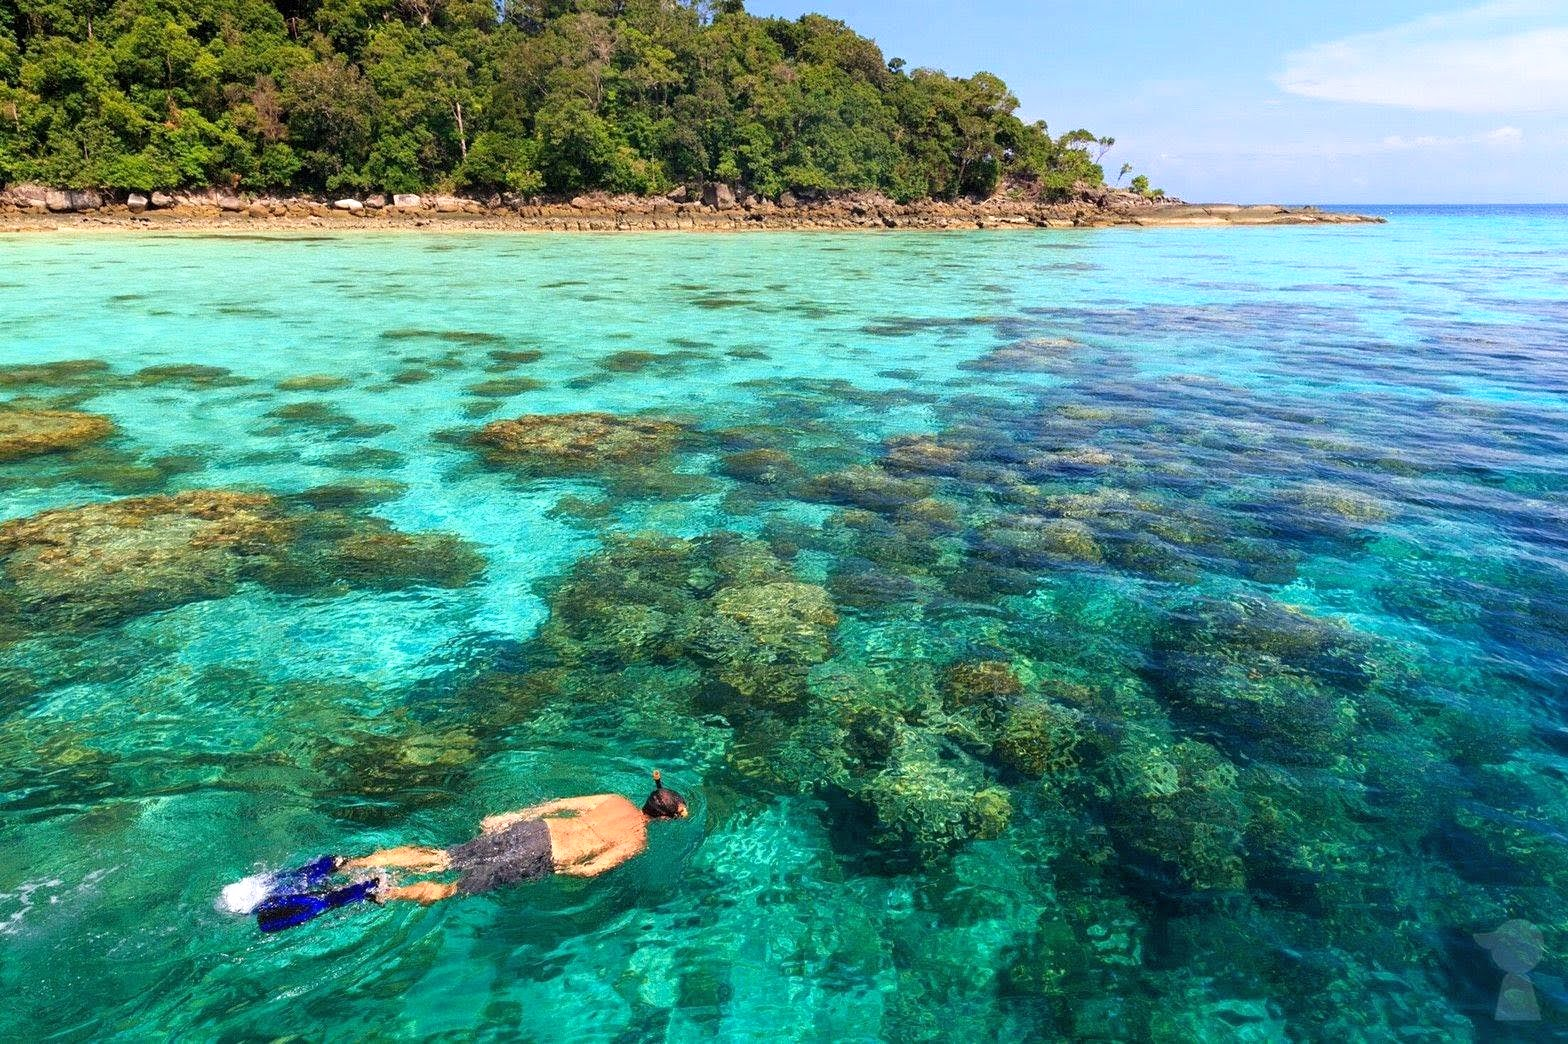 Snorkel Tour to Surin Islands by Fantastic Similan from Khao Lak